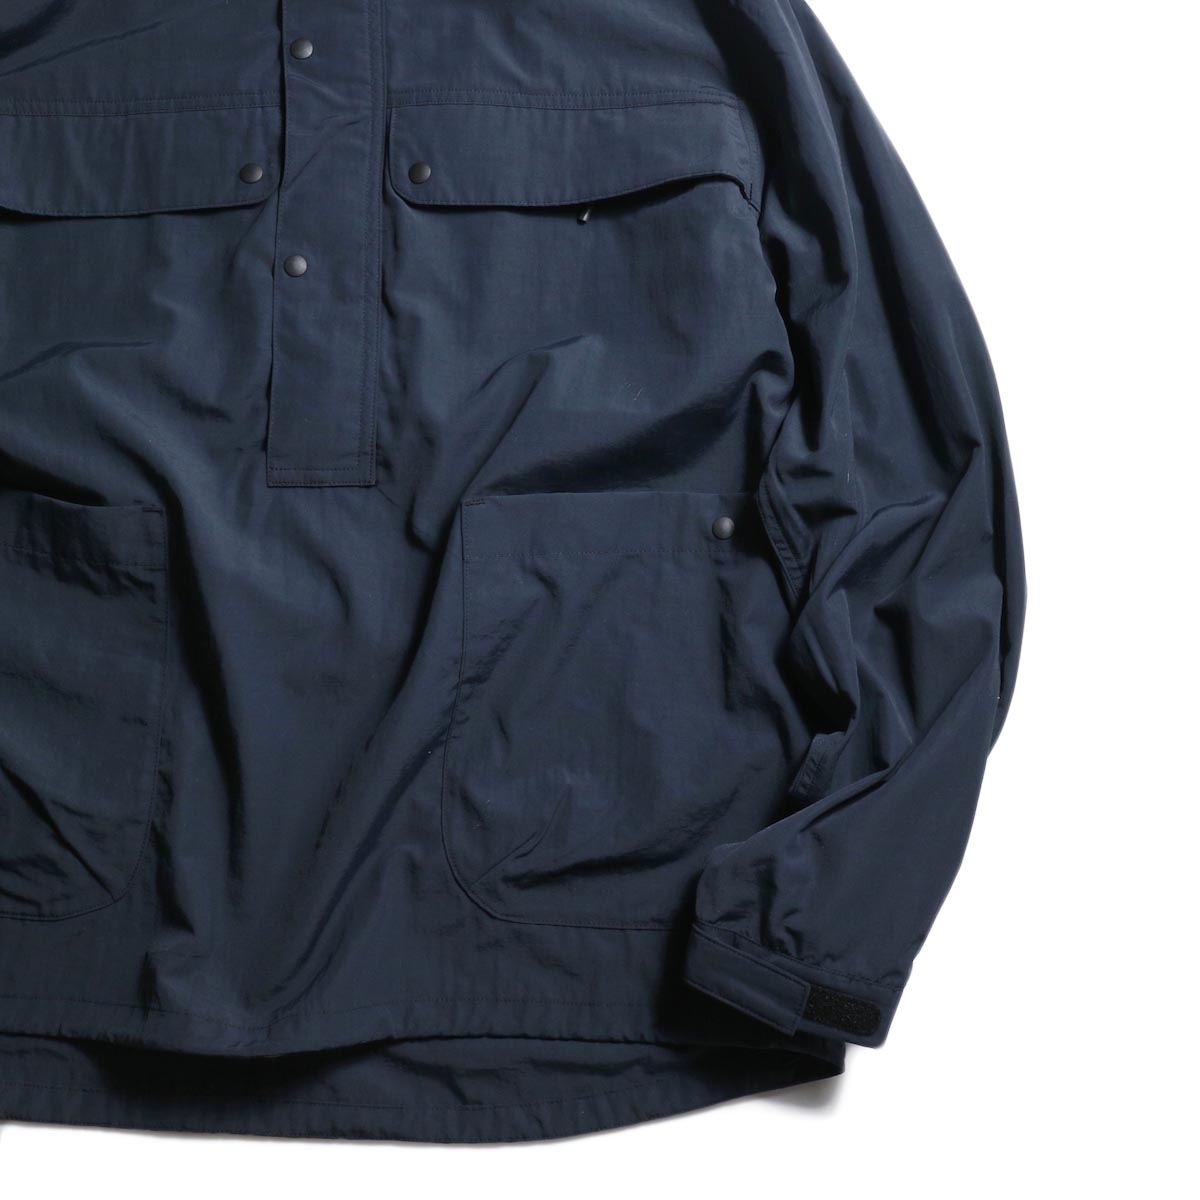 DESCENTE ddd /  PULLOVER JACKET (Black)袖、裾